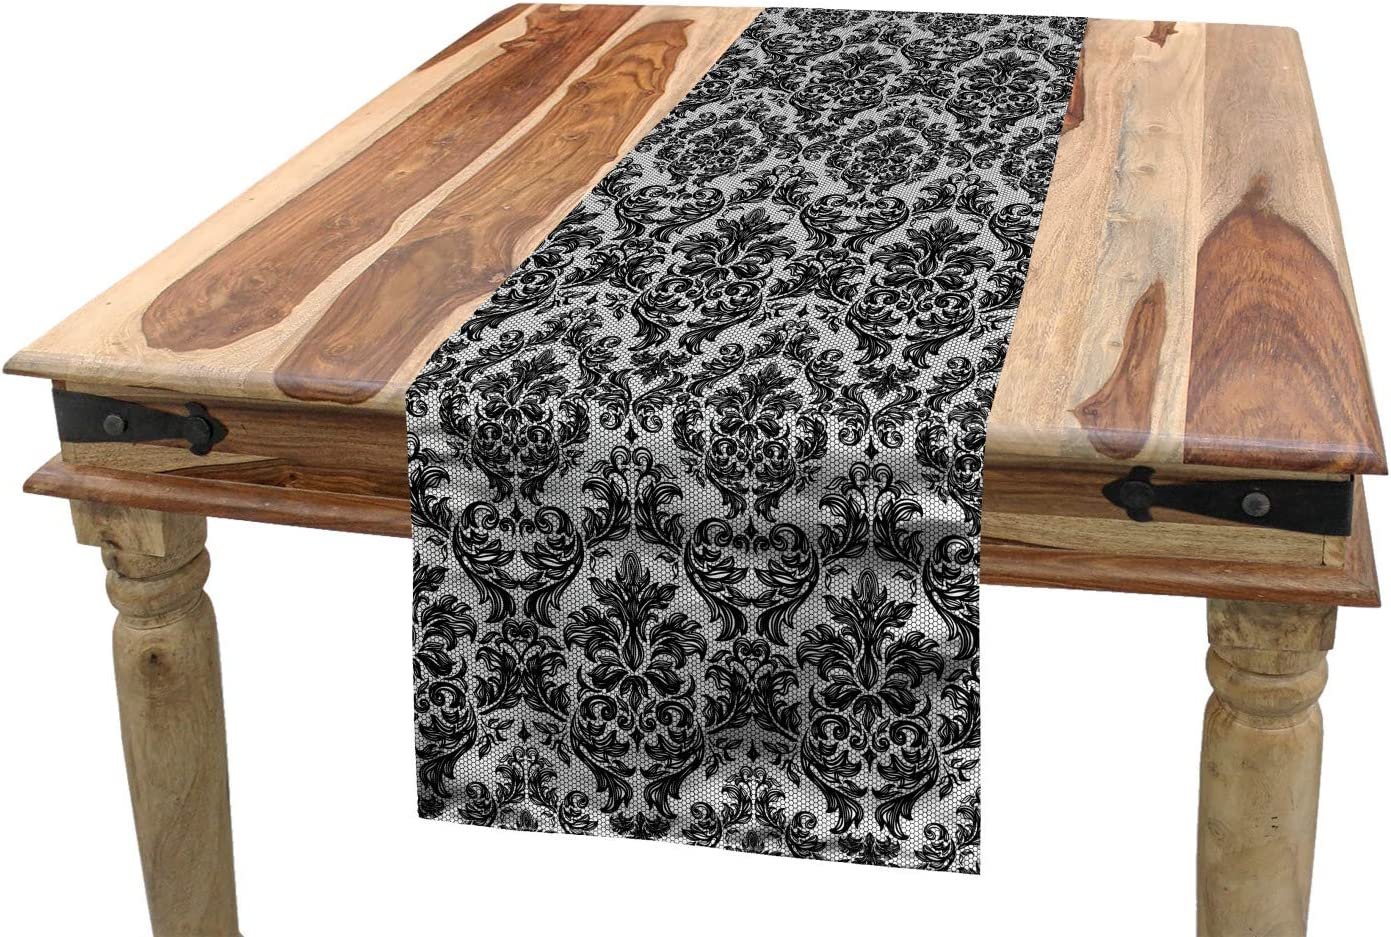 ABAKUHAUS Black and Grey Table Runner Black and Grey Dining Room Kitchen Rectangular Runner Abstract Petal Silhouettes on a Grey Backdrop Ornamental Floral Pattern 16 W X 72 L Inches